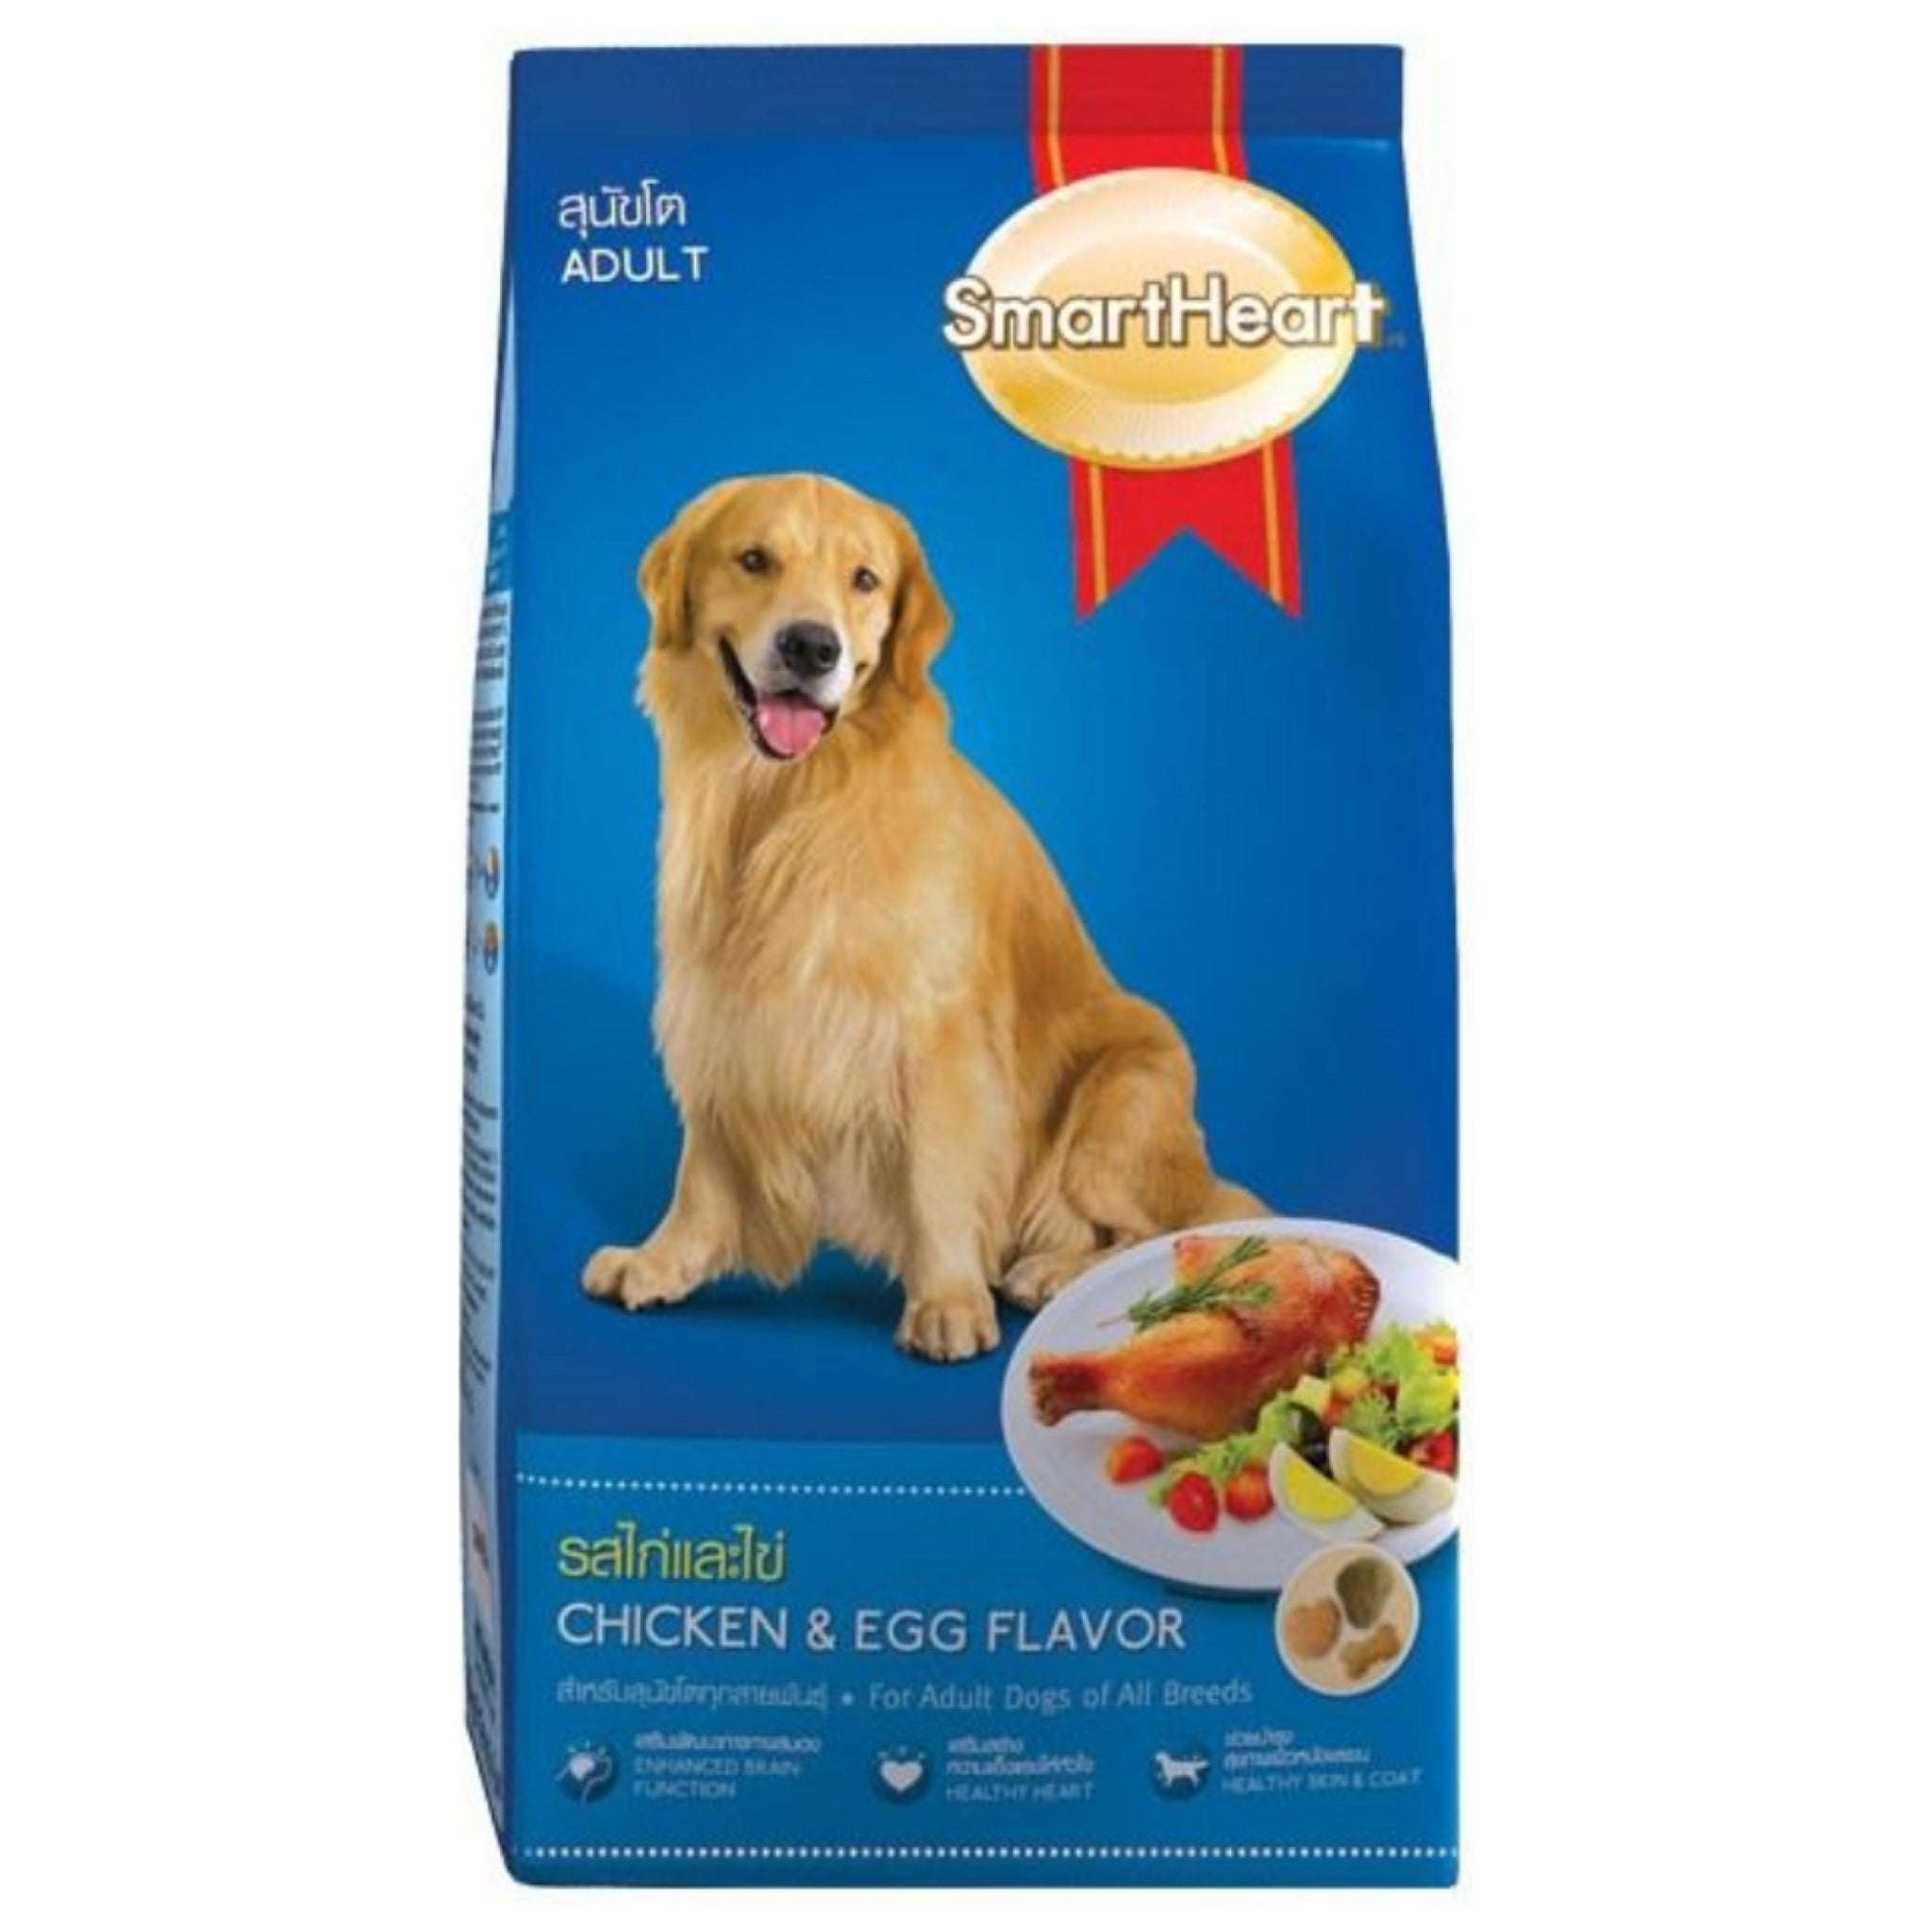 Smart Heart Chicken and Egg Adult Dog Food - Poochles